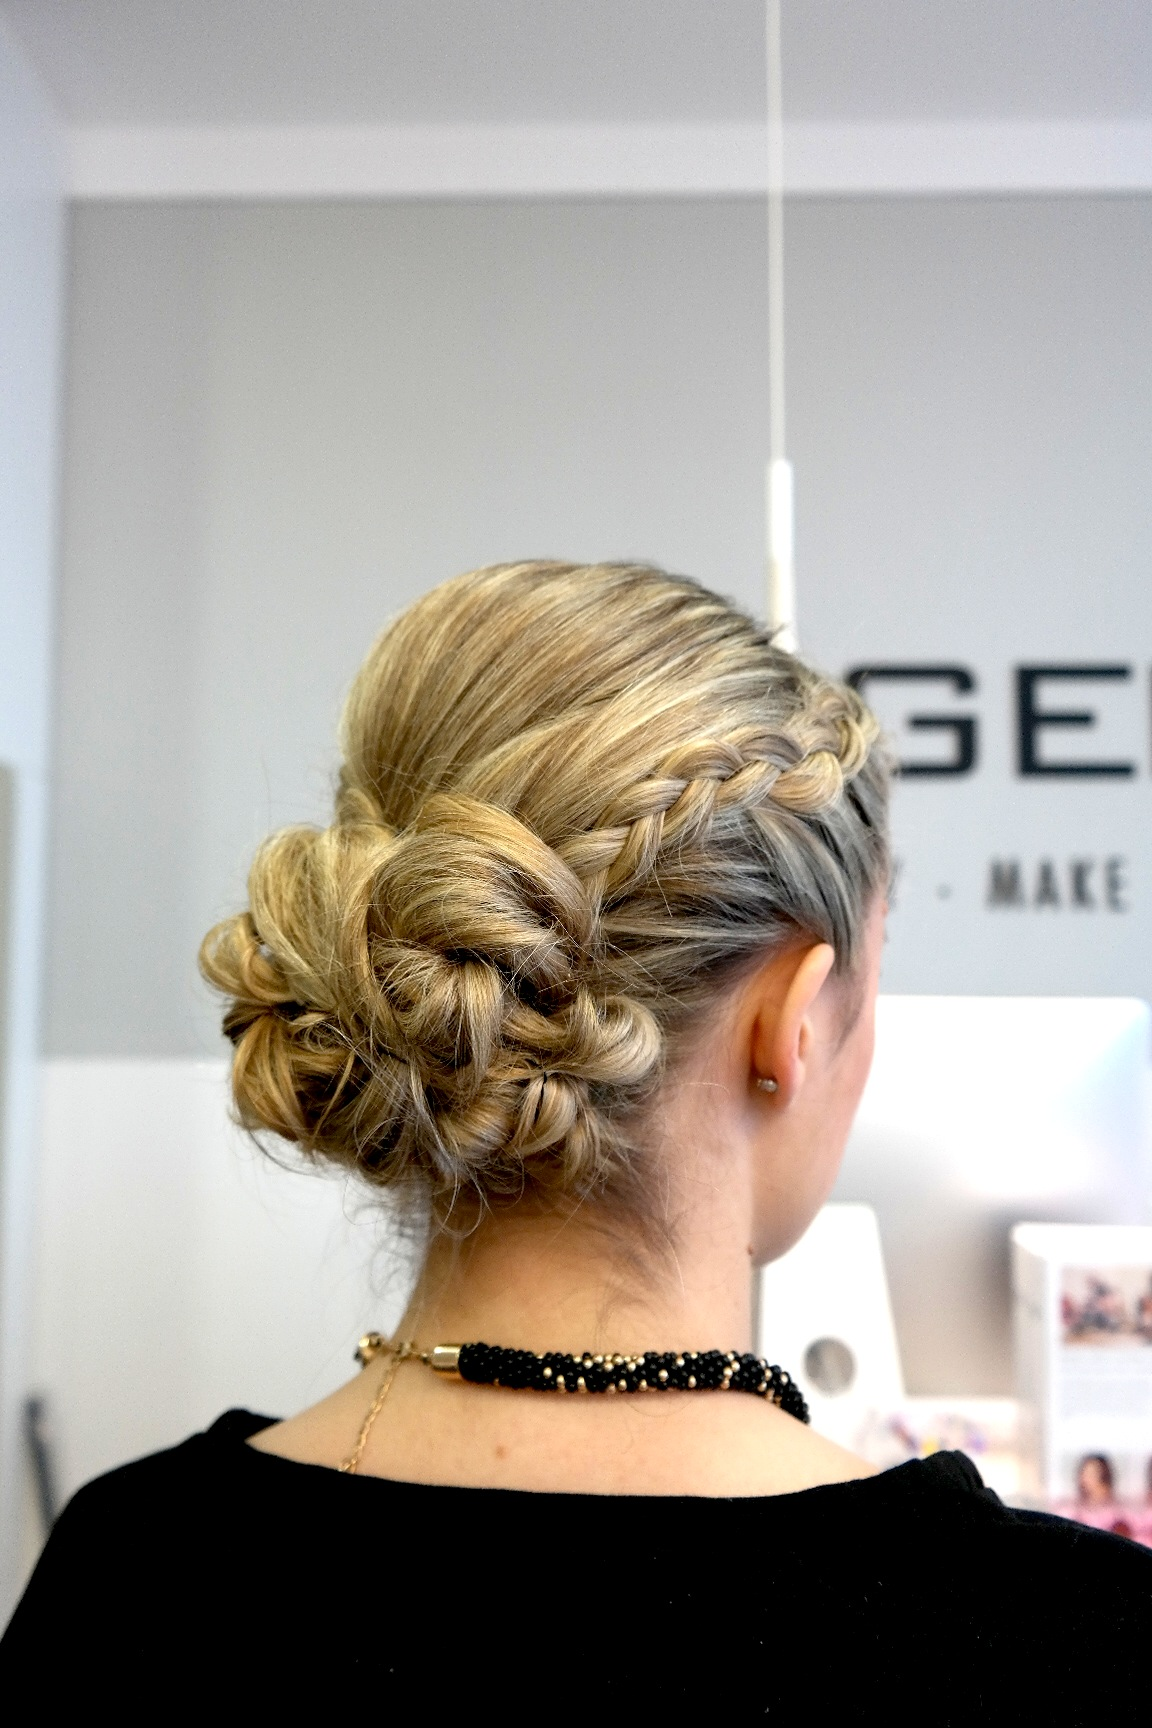 Hair And Beauty Hagemann Missbonnebonne Silvesterfrisur Geflochten